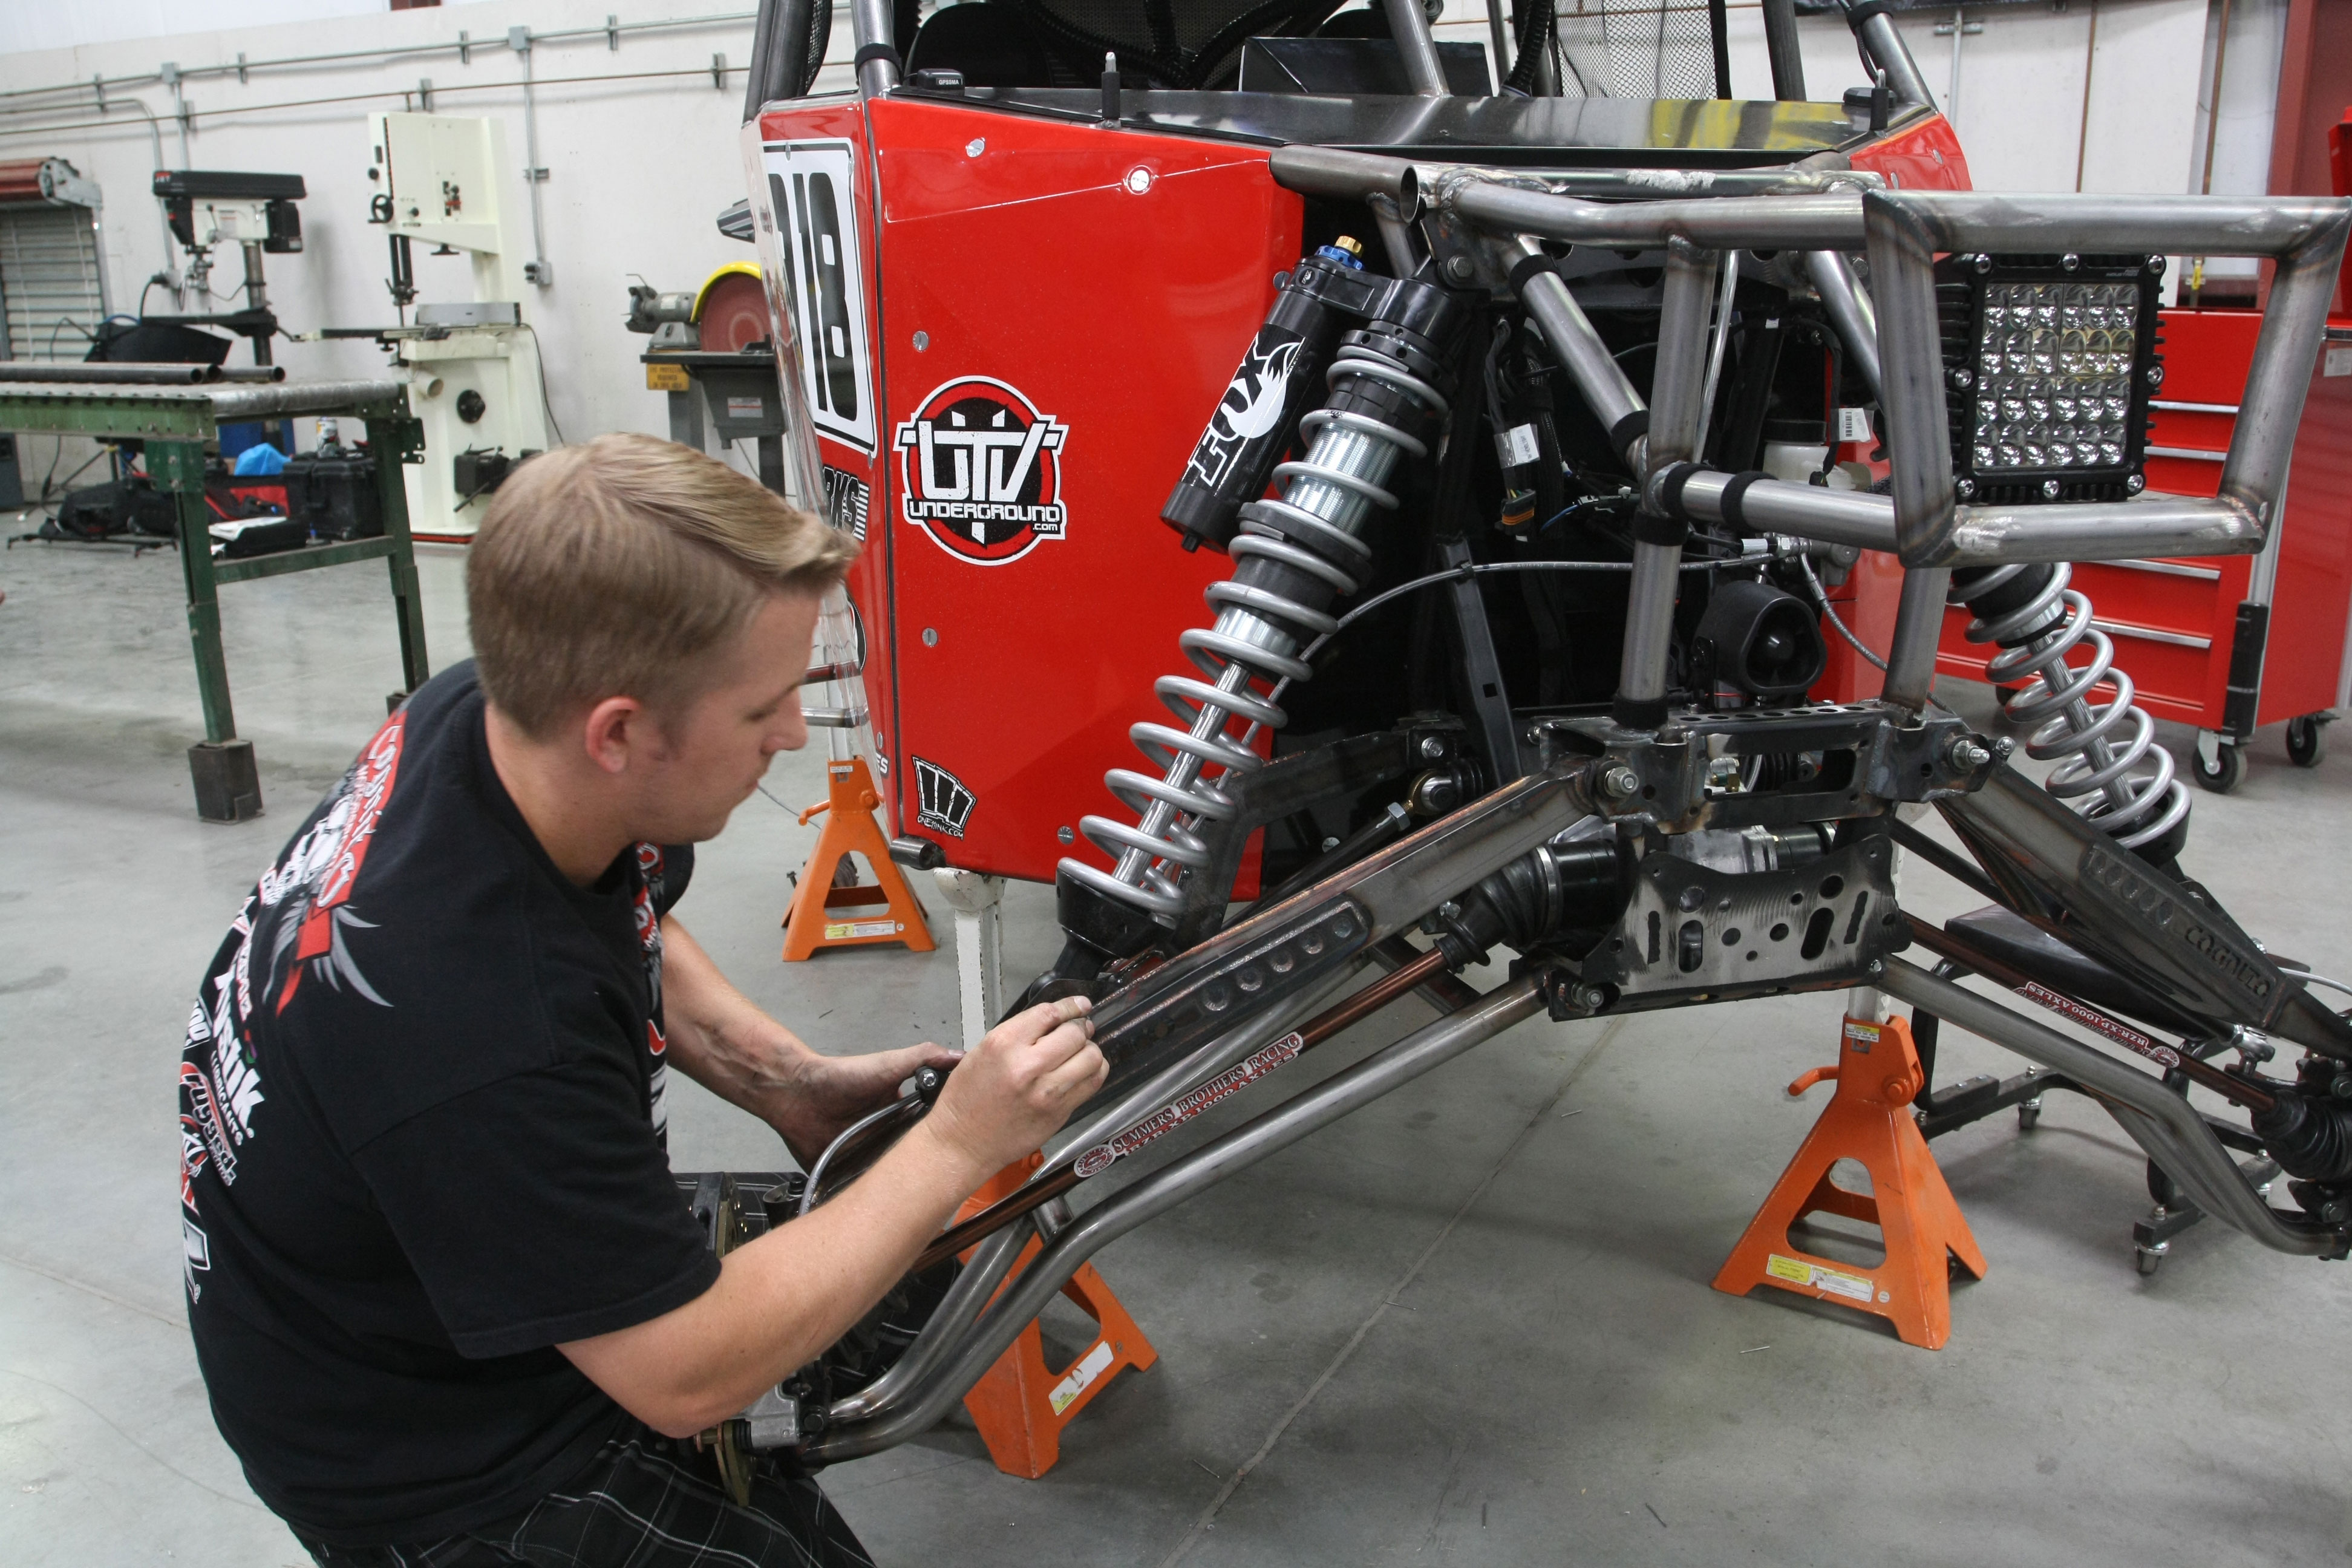 Keeping the RZR running smoothly is done with FOX Podium Internal Bypass Series shocks. The FOX shocks feature a DSC adjuster, 7-zone compression and 3-zone rebound bypass, dual rate springs, 7/8-inch shafts and a remote reservoir.